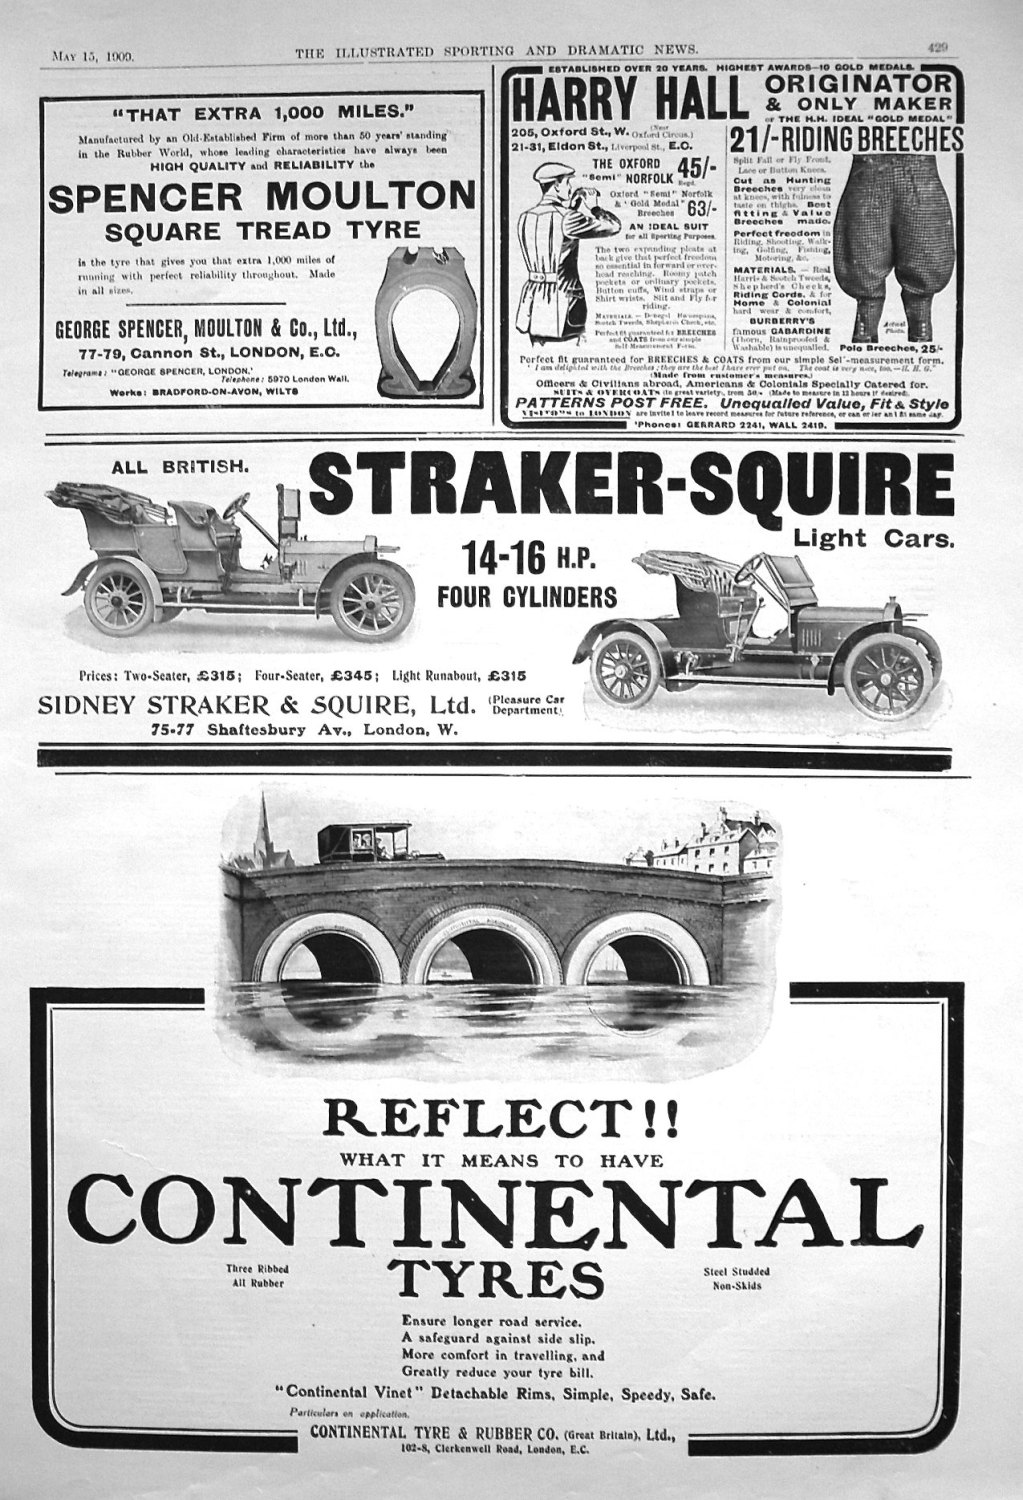 Adverts. Illustrated Sporting and Dramatic News May 15th 1909.